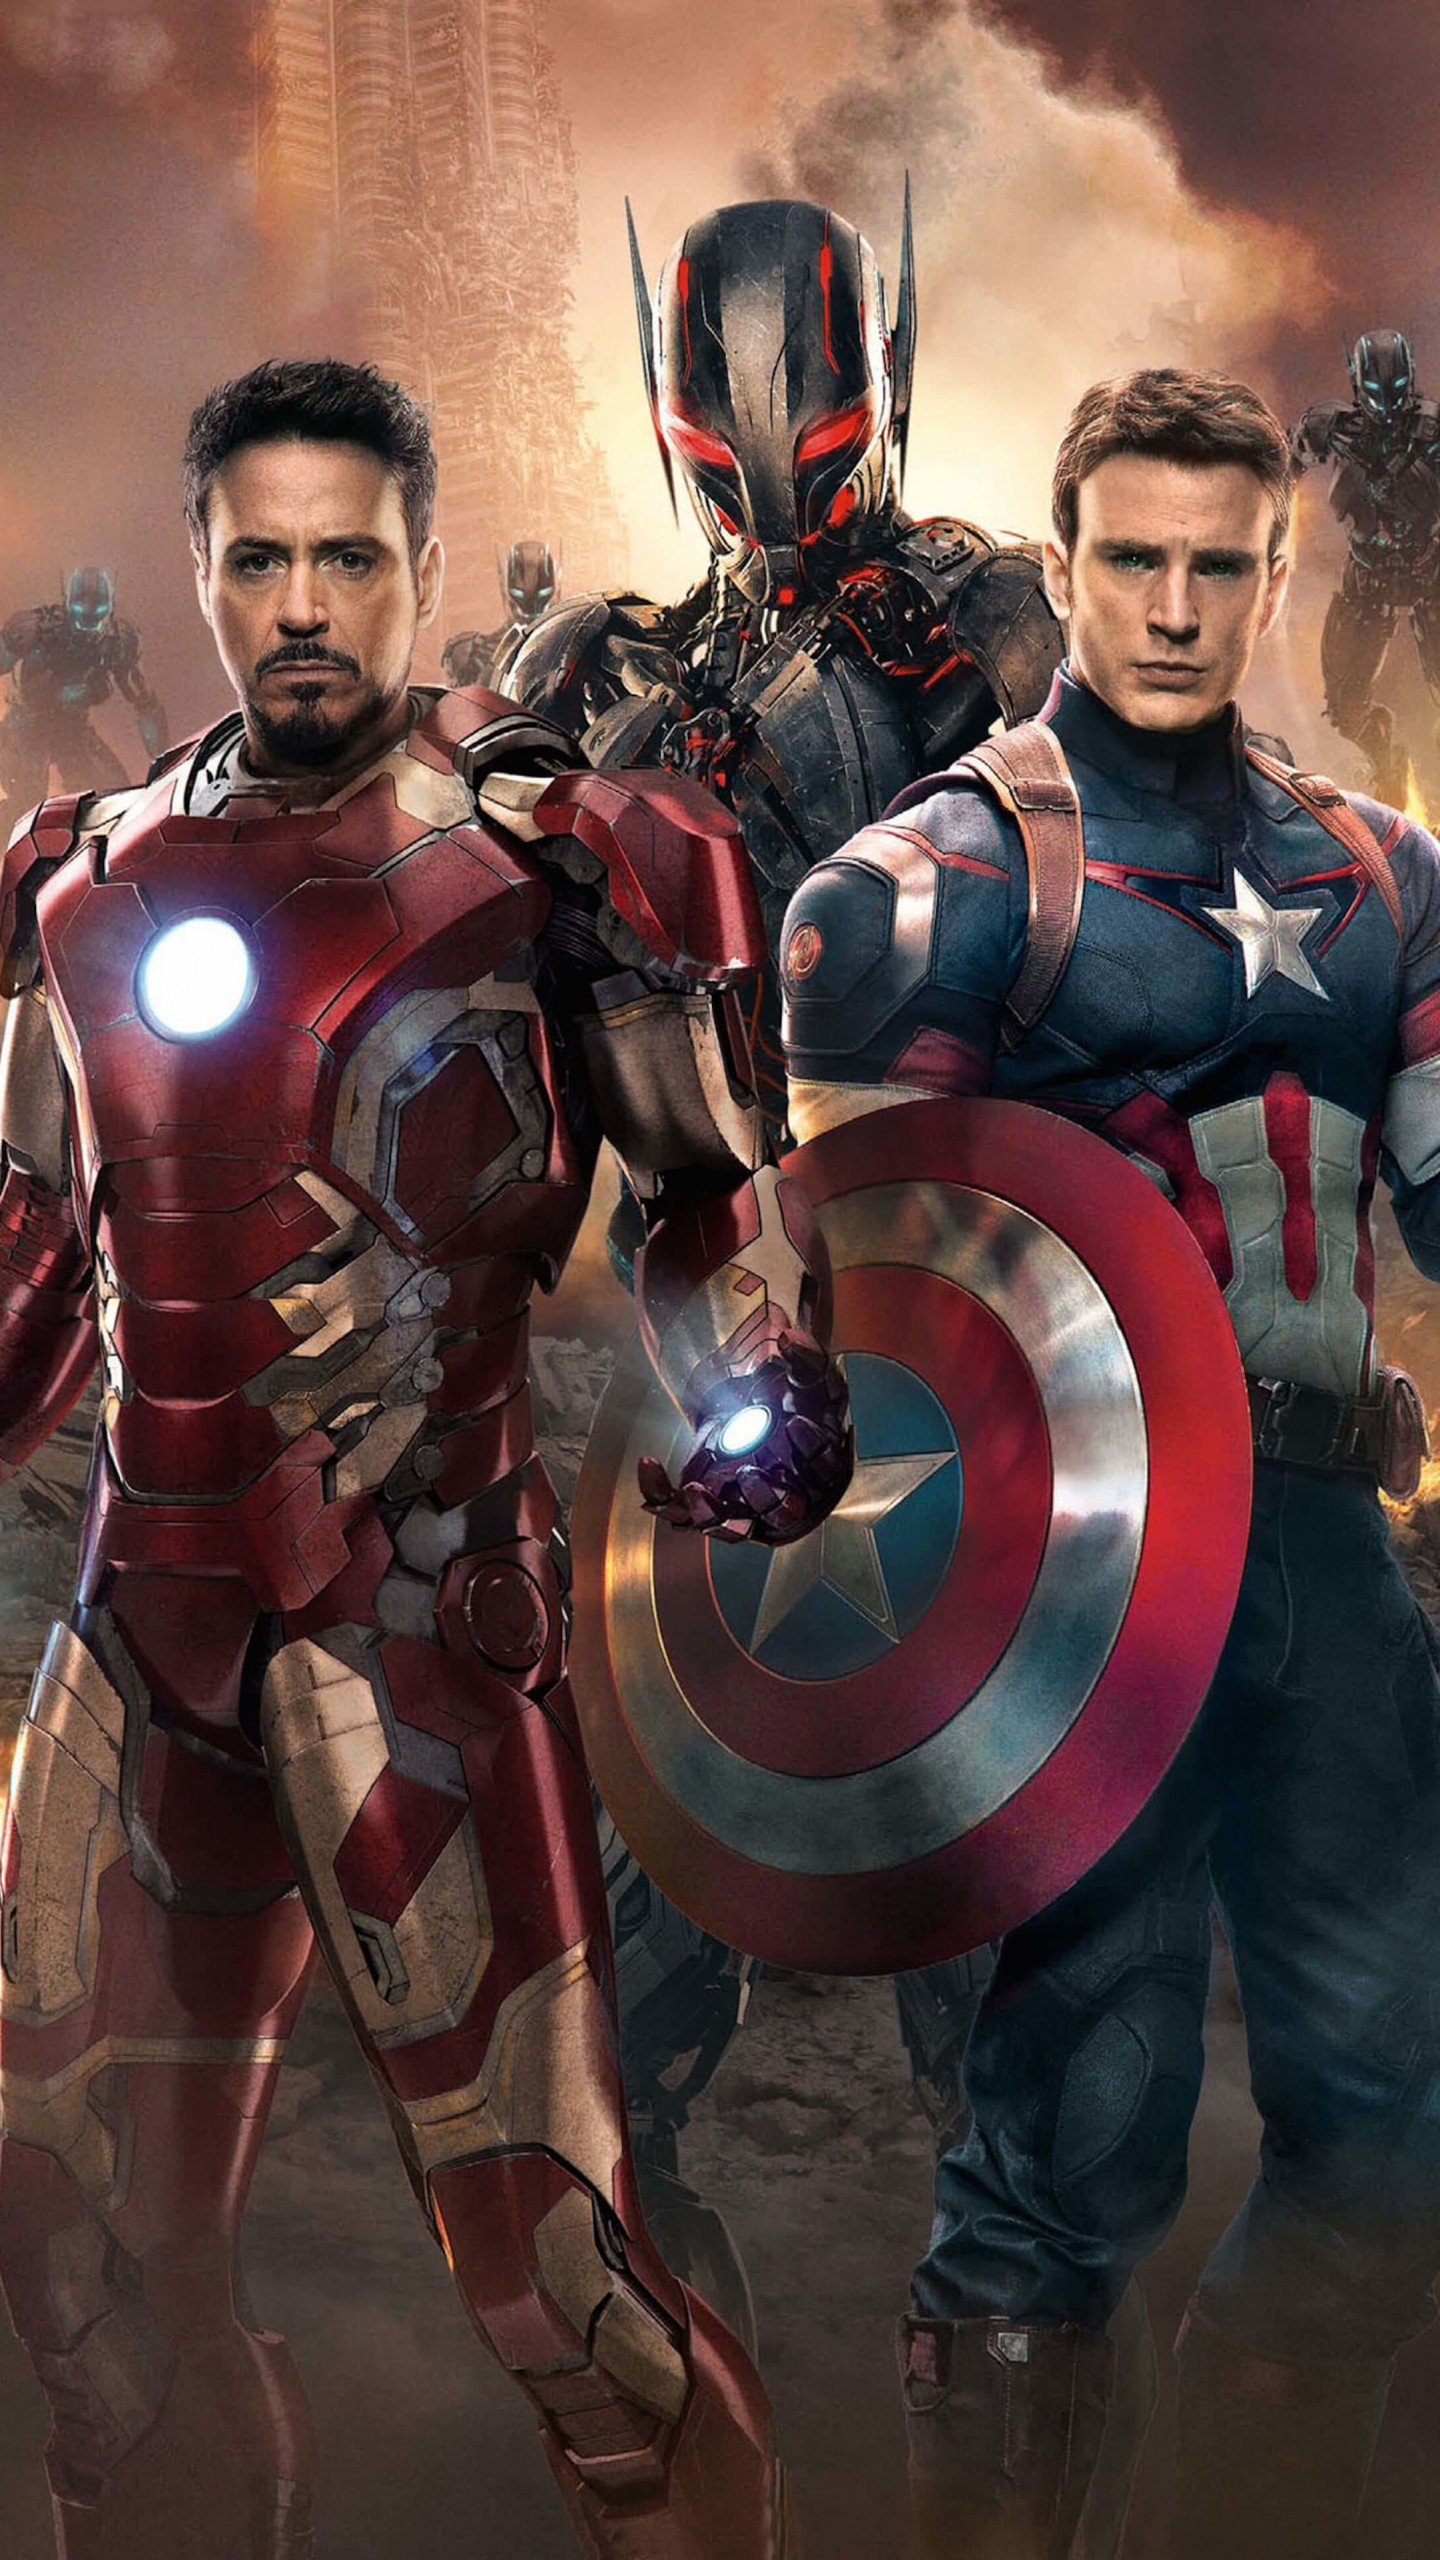 The Avengers: Age of Ultron - Iron Man and Captain America Wallpaper for SAMSUNG Galaxy S6